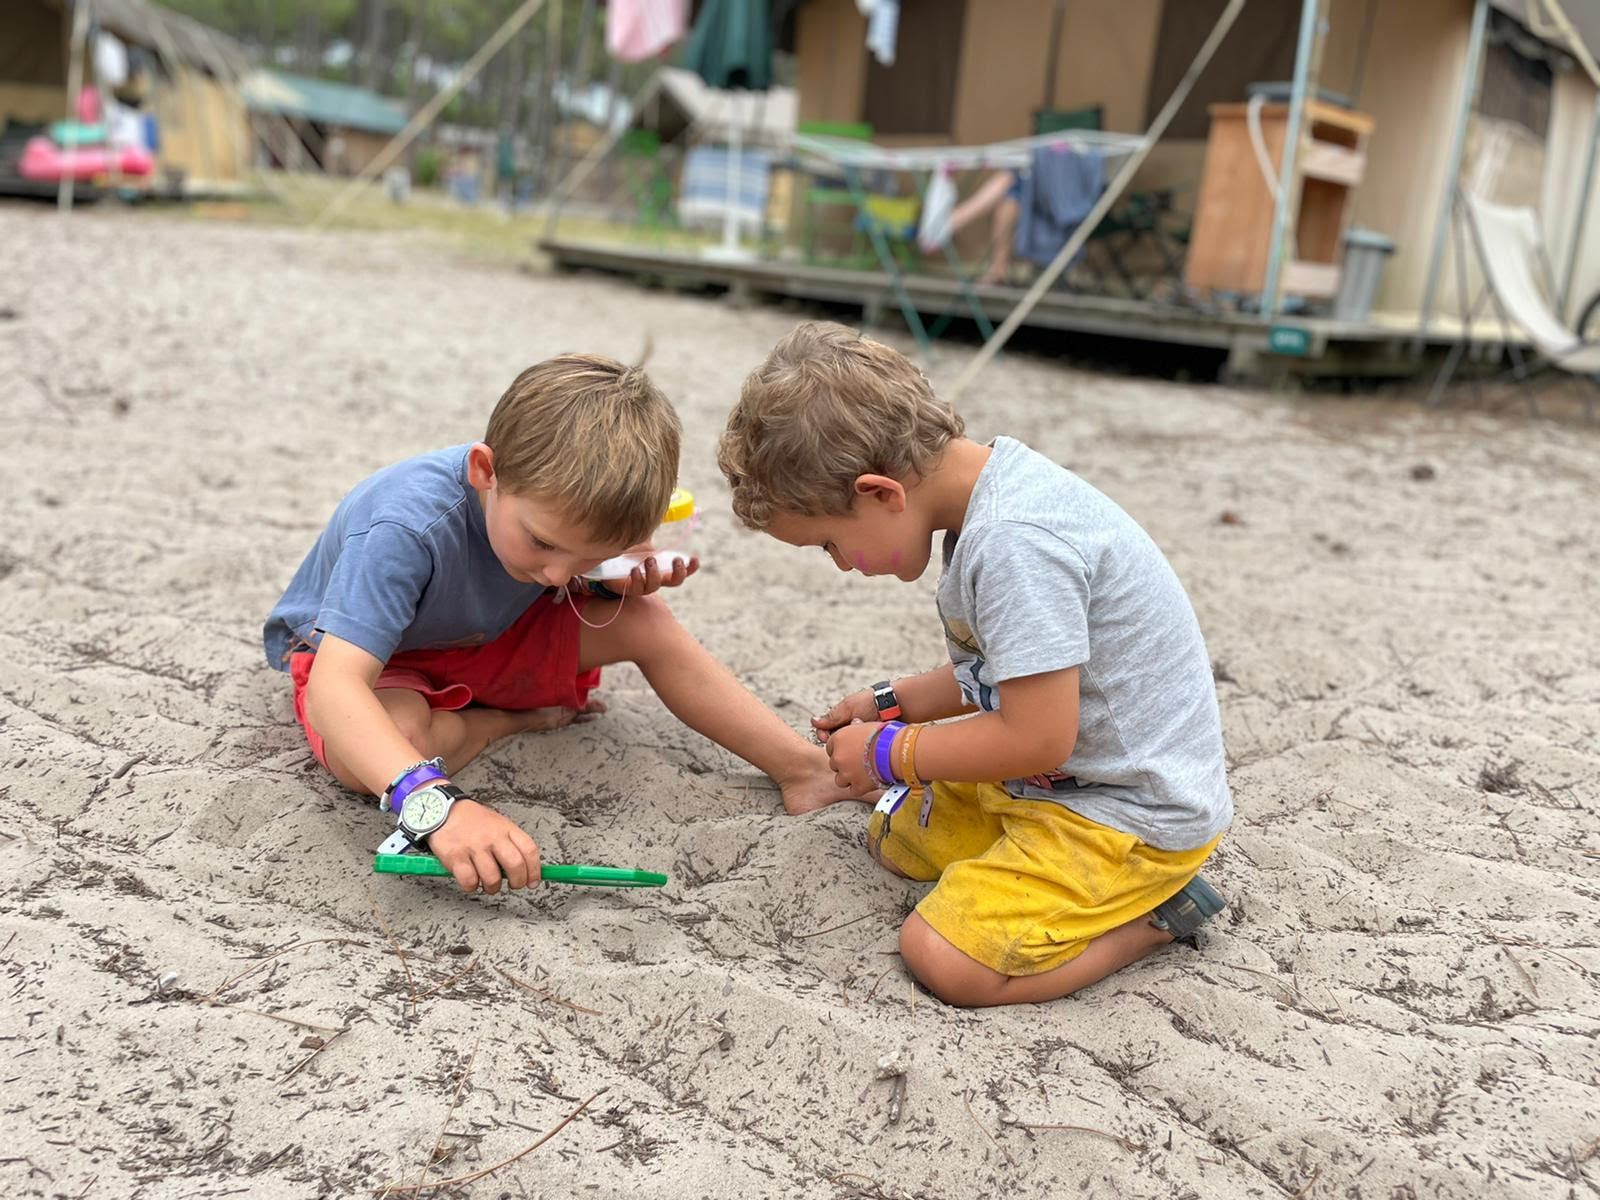 Two kids searching for bugs and crabs on the beach on holiday